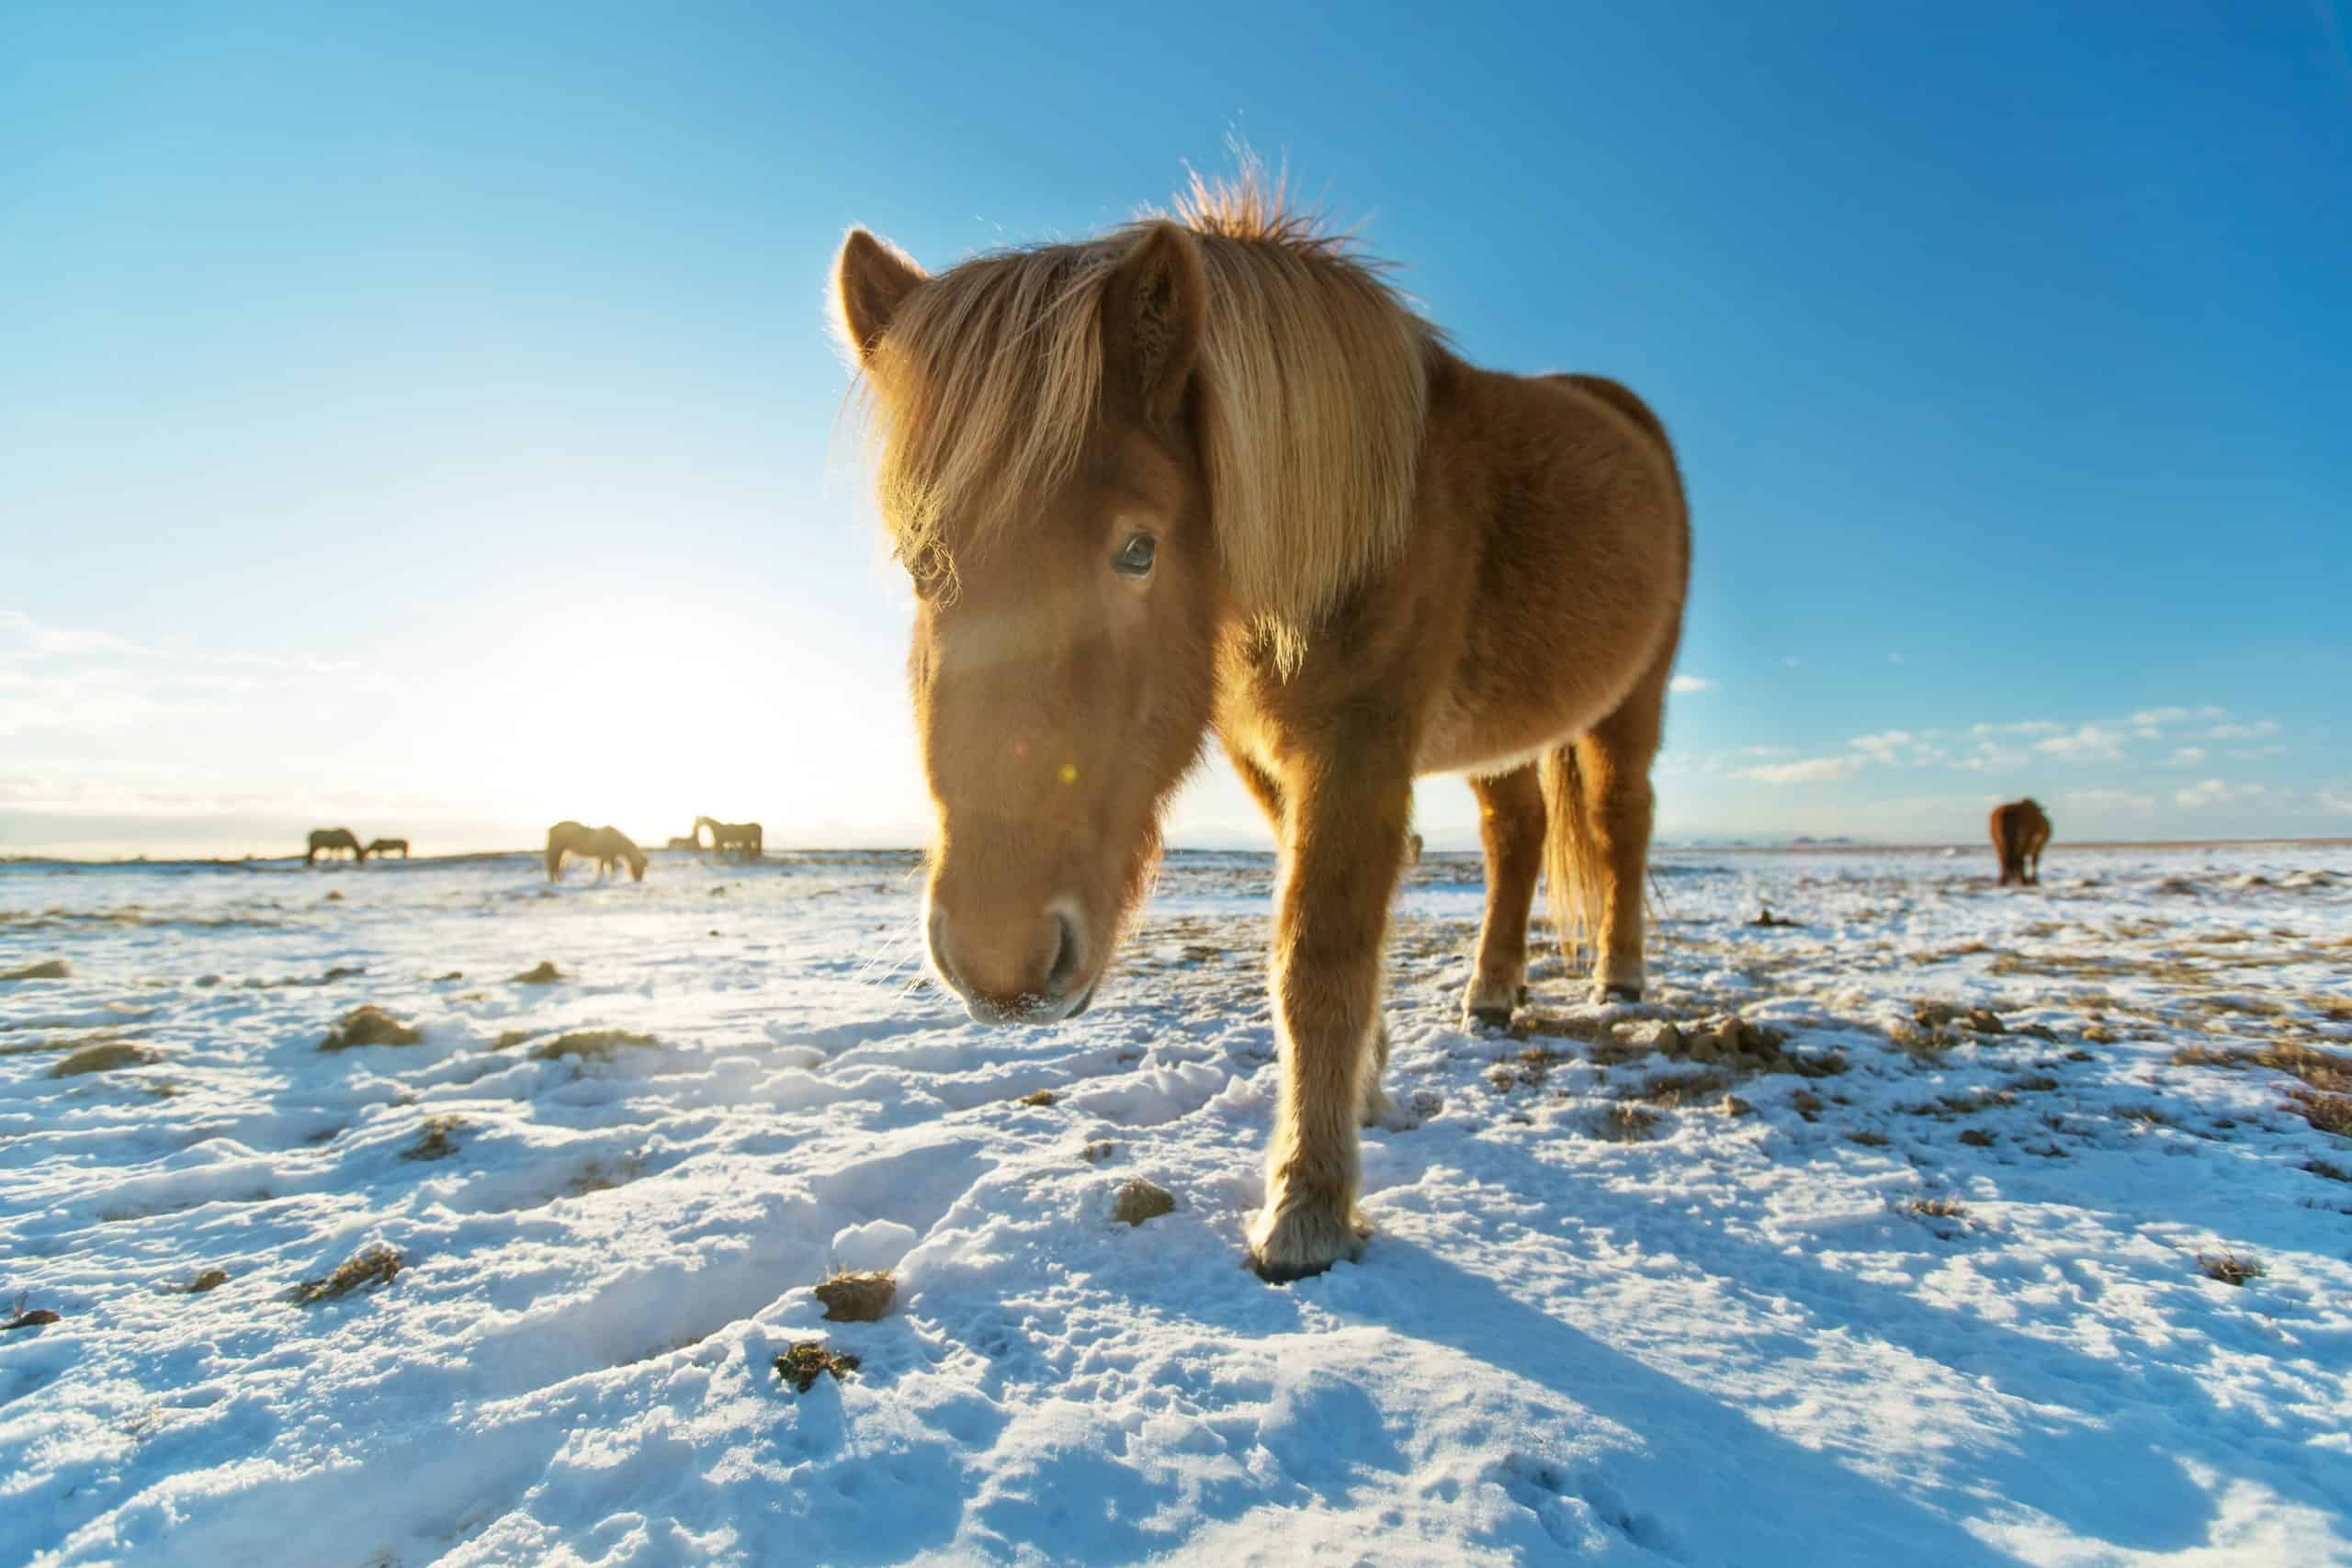 horses in winter landscape. Iconic symbol of Iceland fauna, tourist point of interest